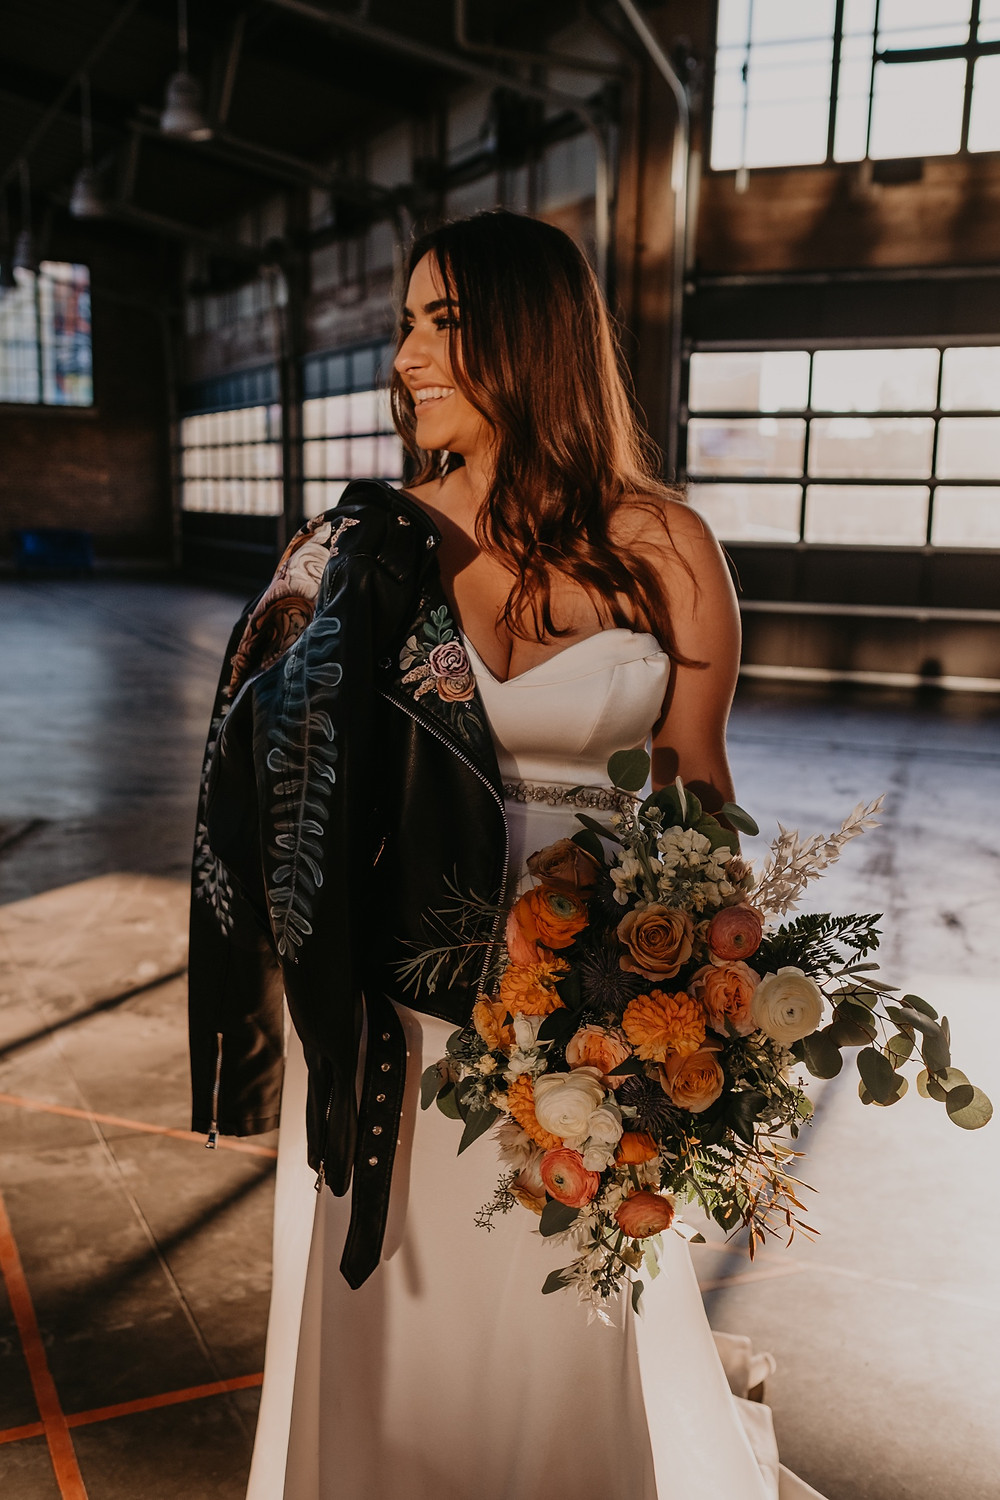 Bride with wedding flowers and leather jacket in Detroit wedding. Photographed by Nicole Leanne Photography.